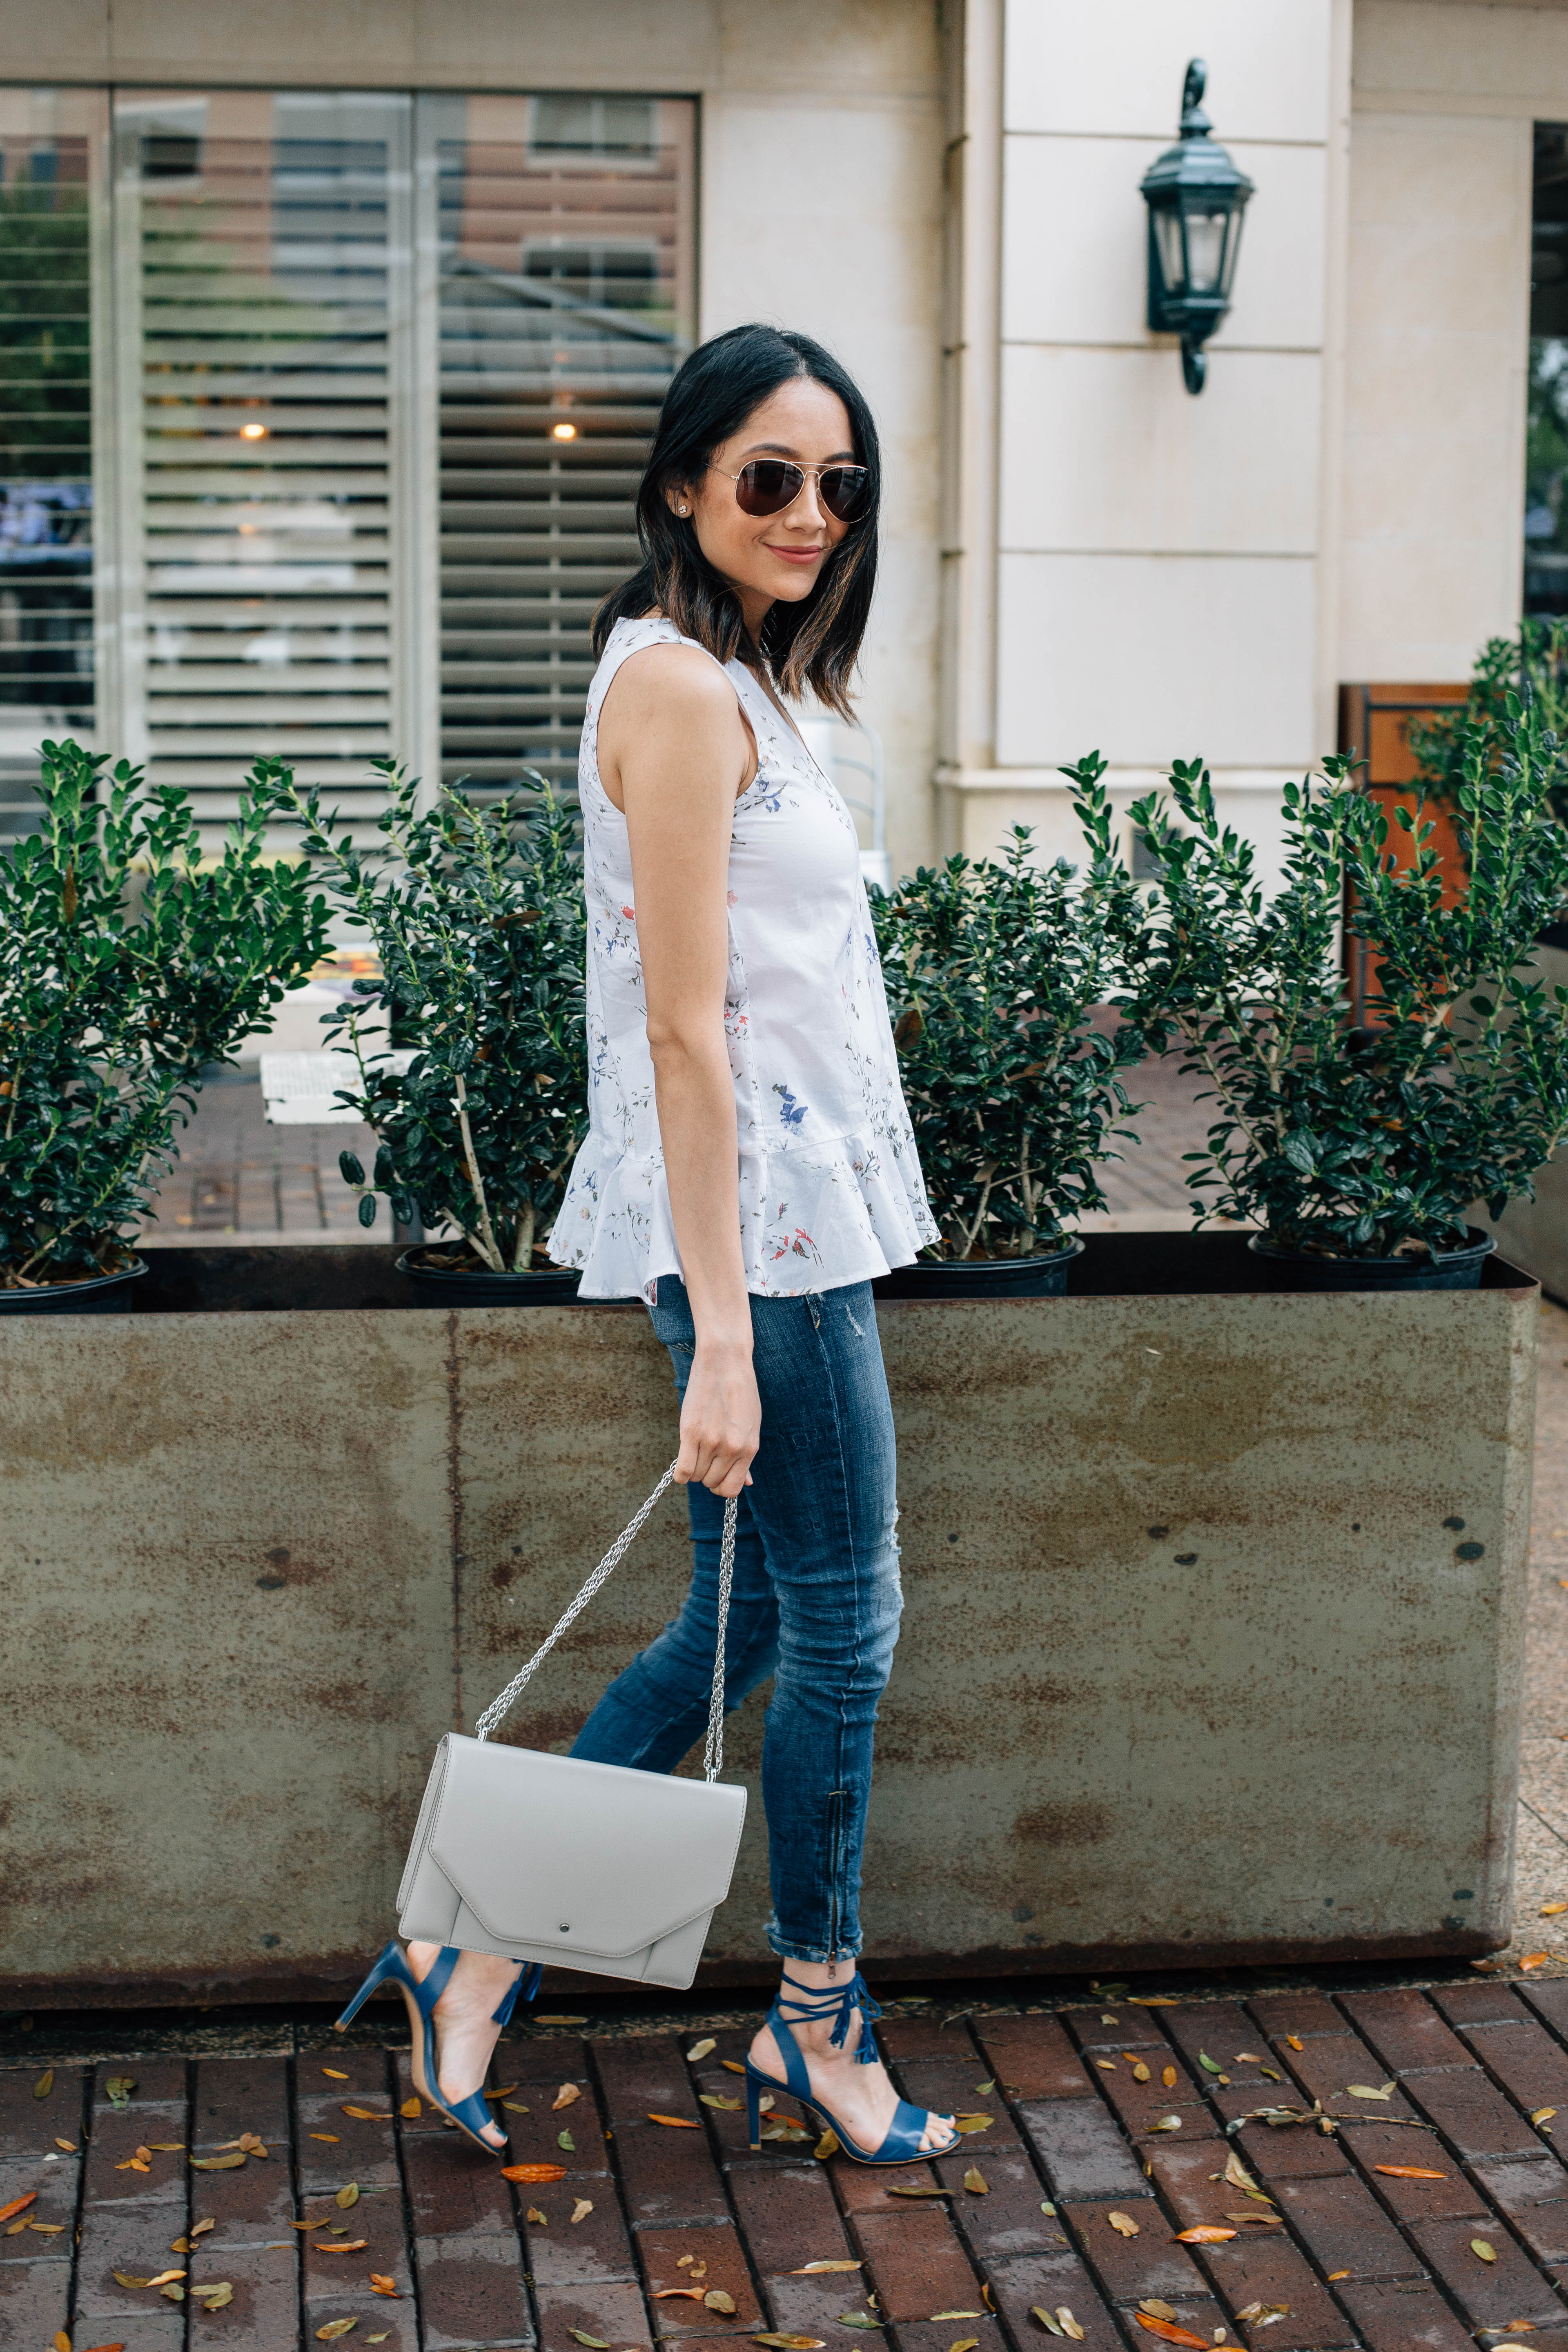 Daily Craving, Style blogger, Floral print top, Ankle zipper jeans, Skinny Jeans, Lace Up Sandals